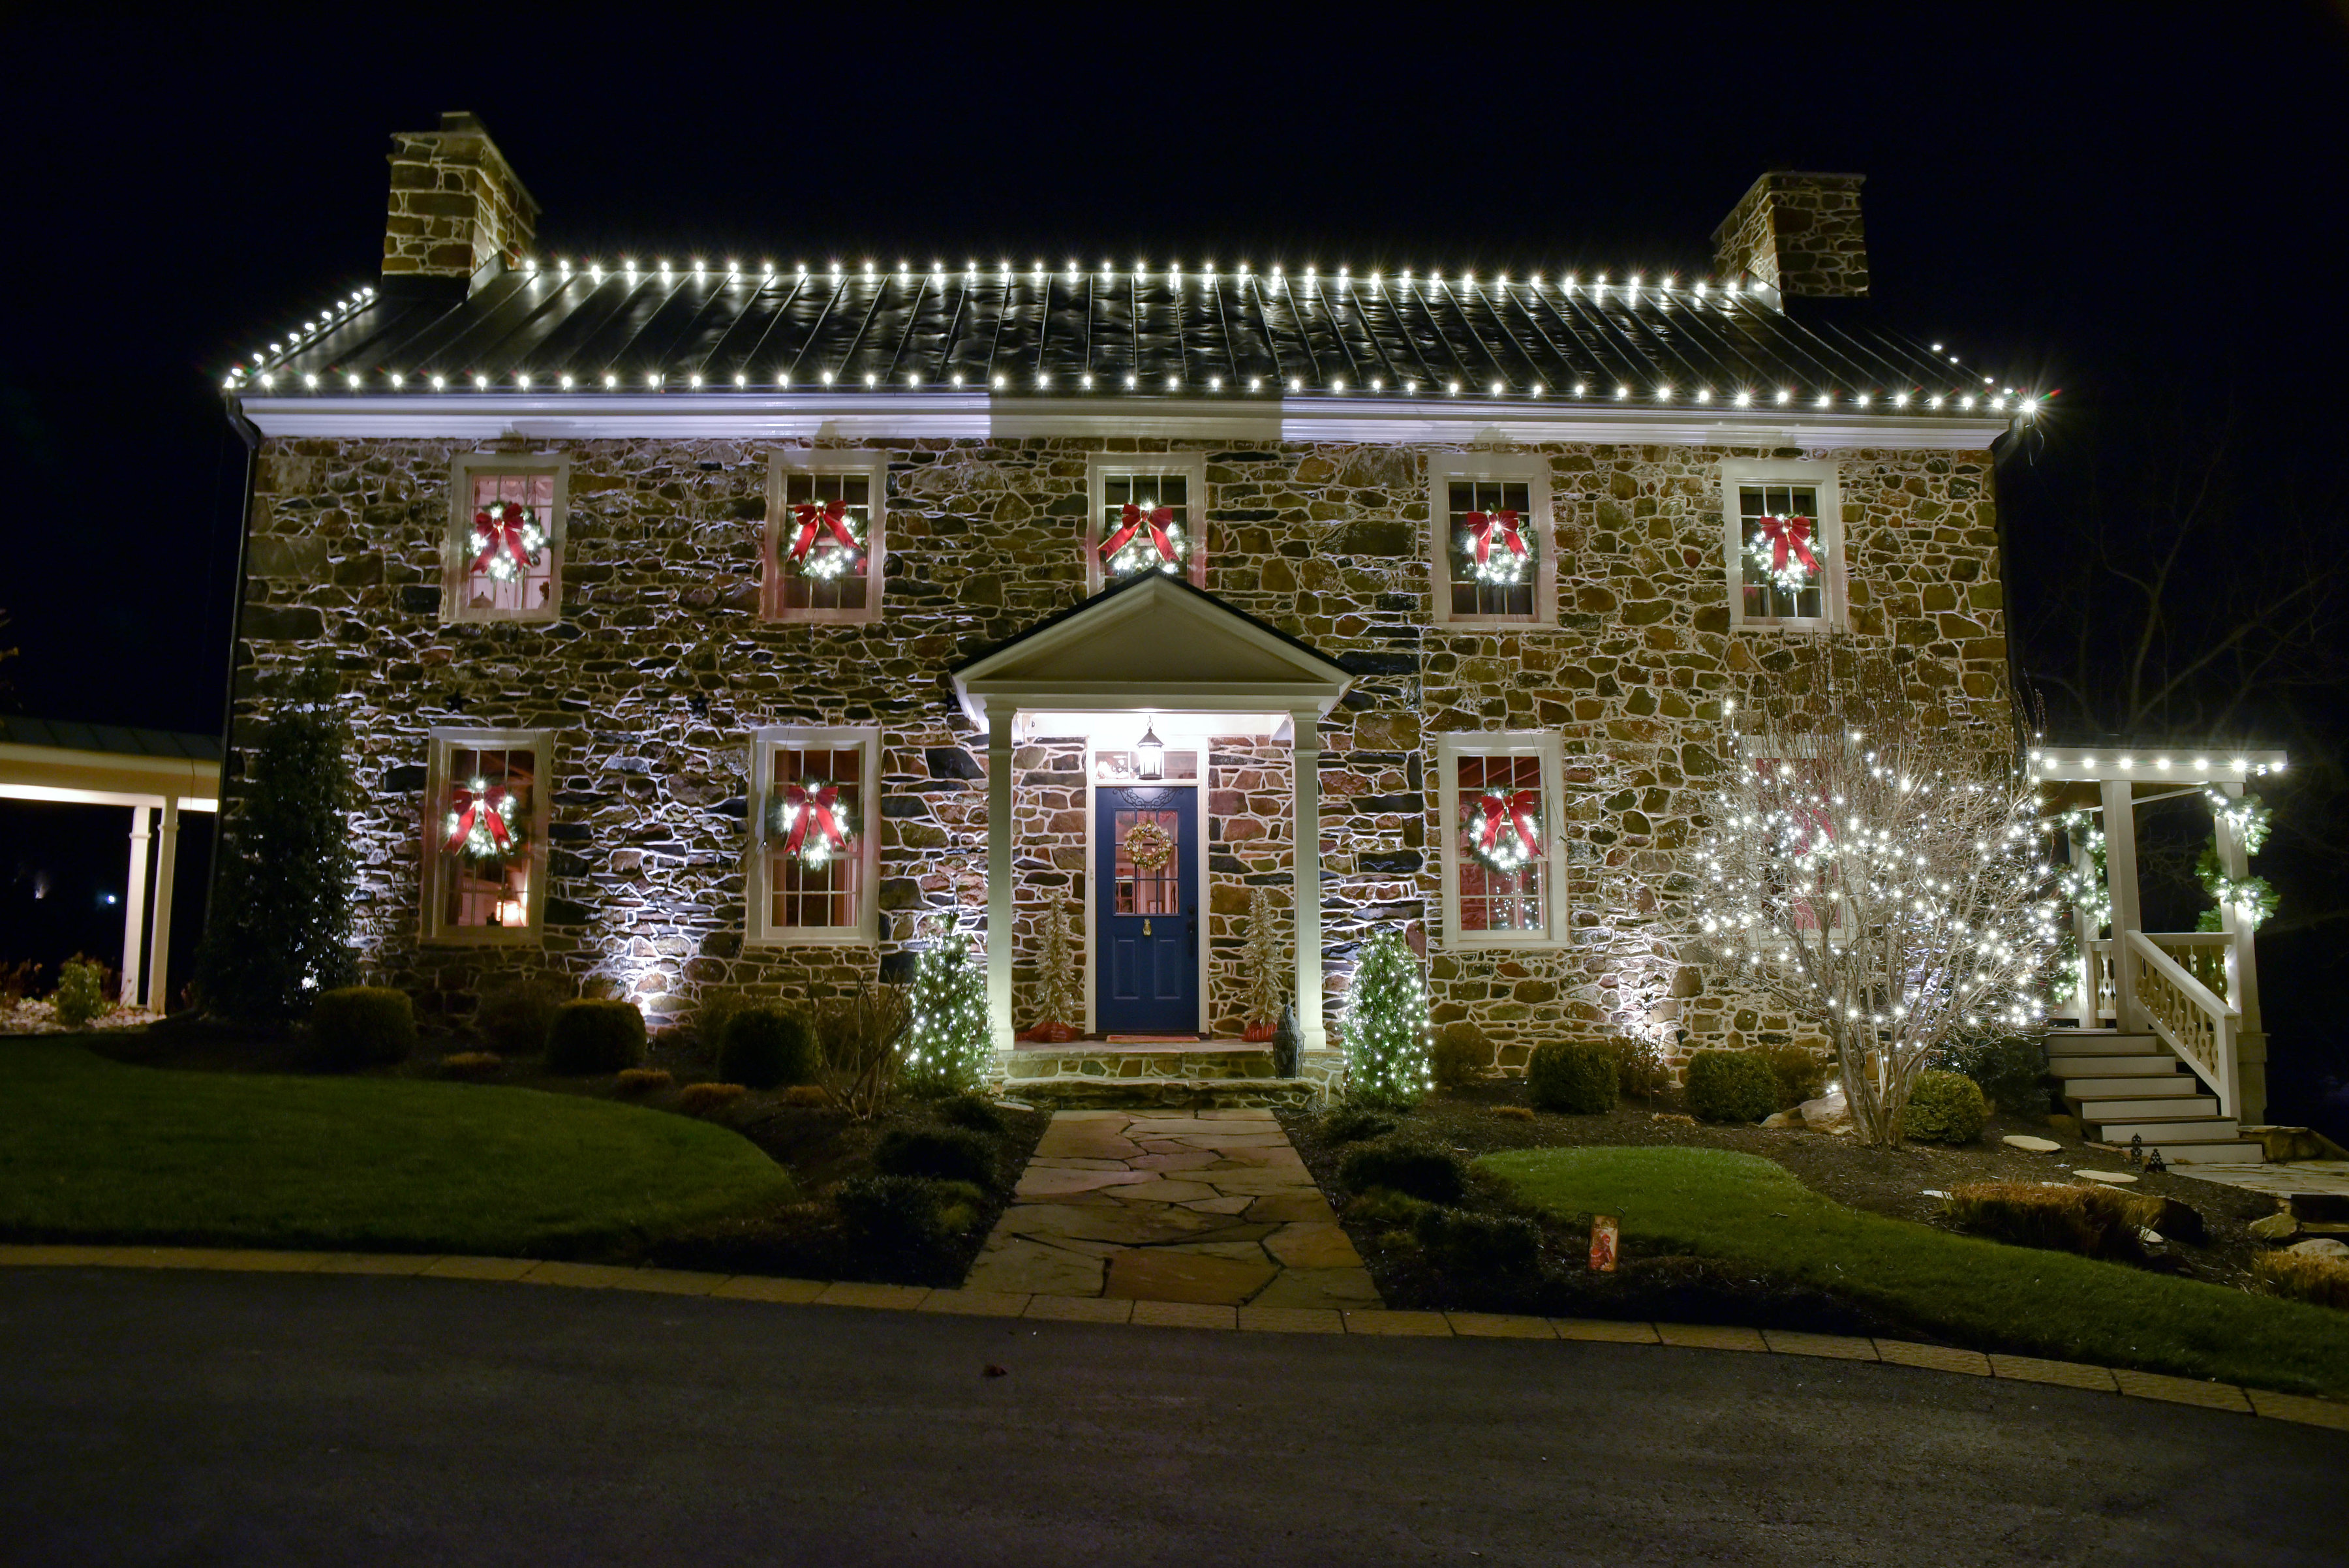 ... Of Unique And Creative Holiday Lighting Displays For Residential As  Well As Commercial Properties. String Lights, Snowflake Lights, Icicle  Lights, ...